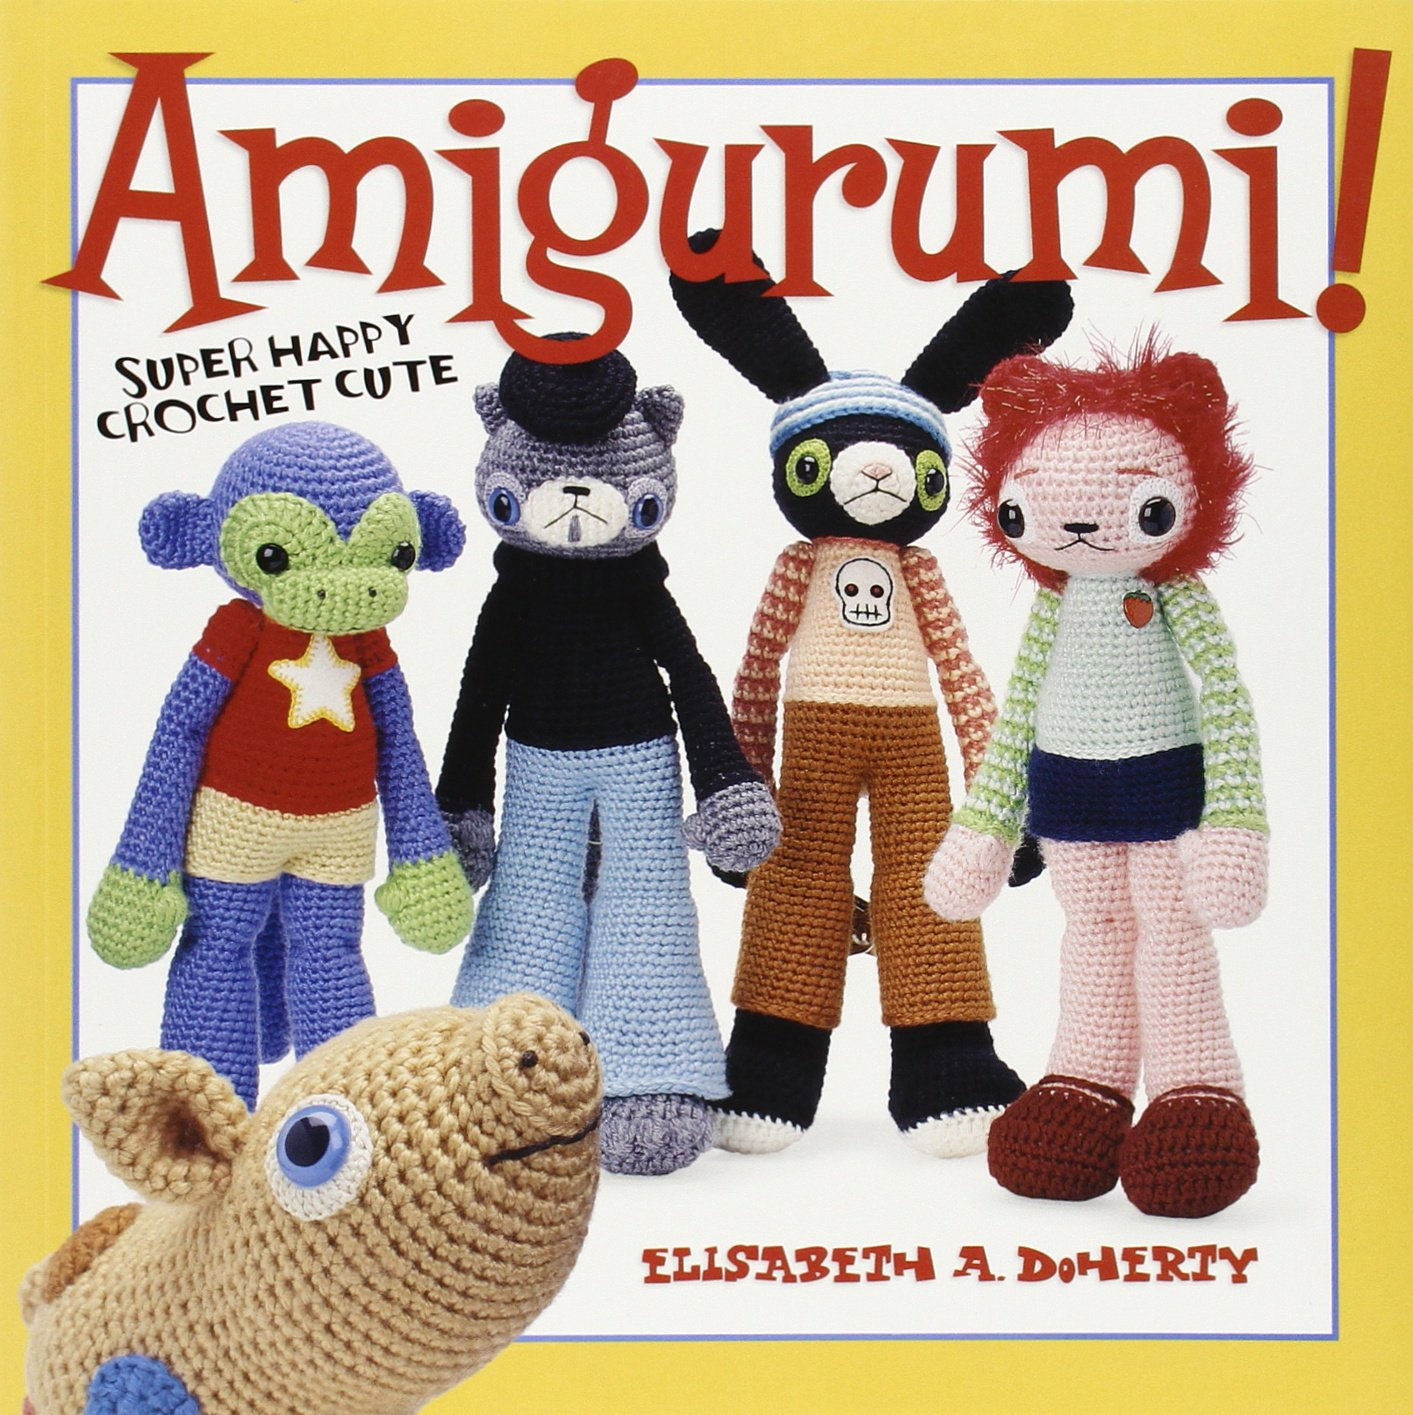 Amigurumi Super Happy Crochet Cute Elisabeth A Doherty